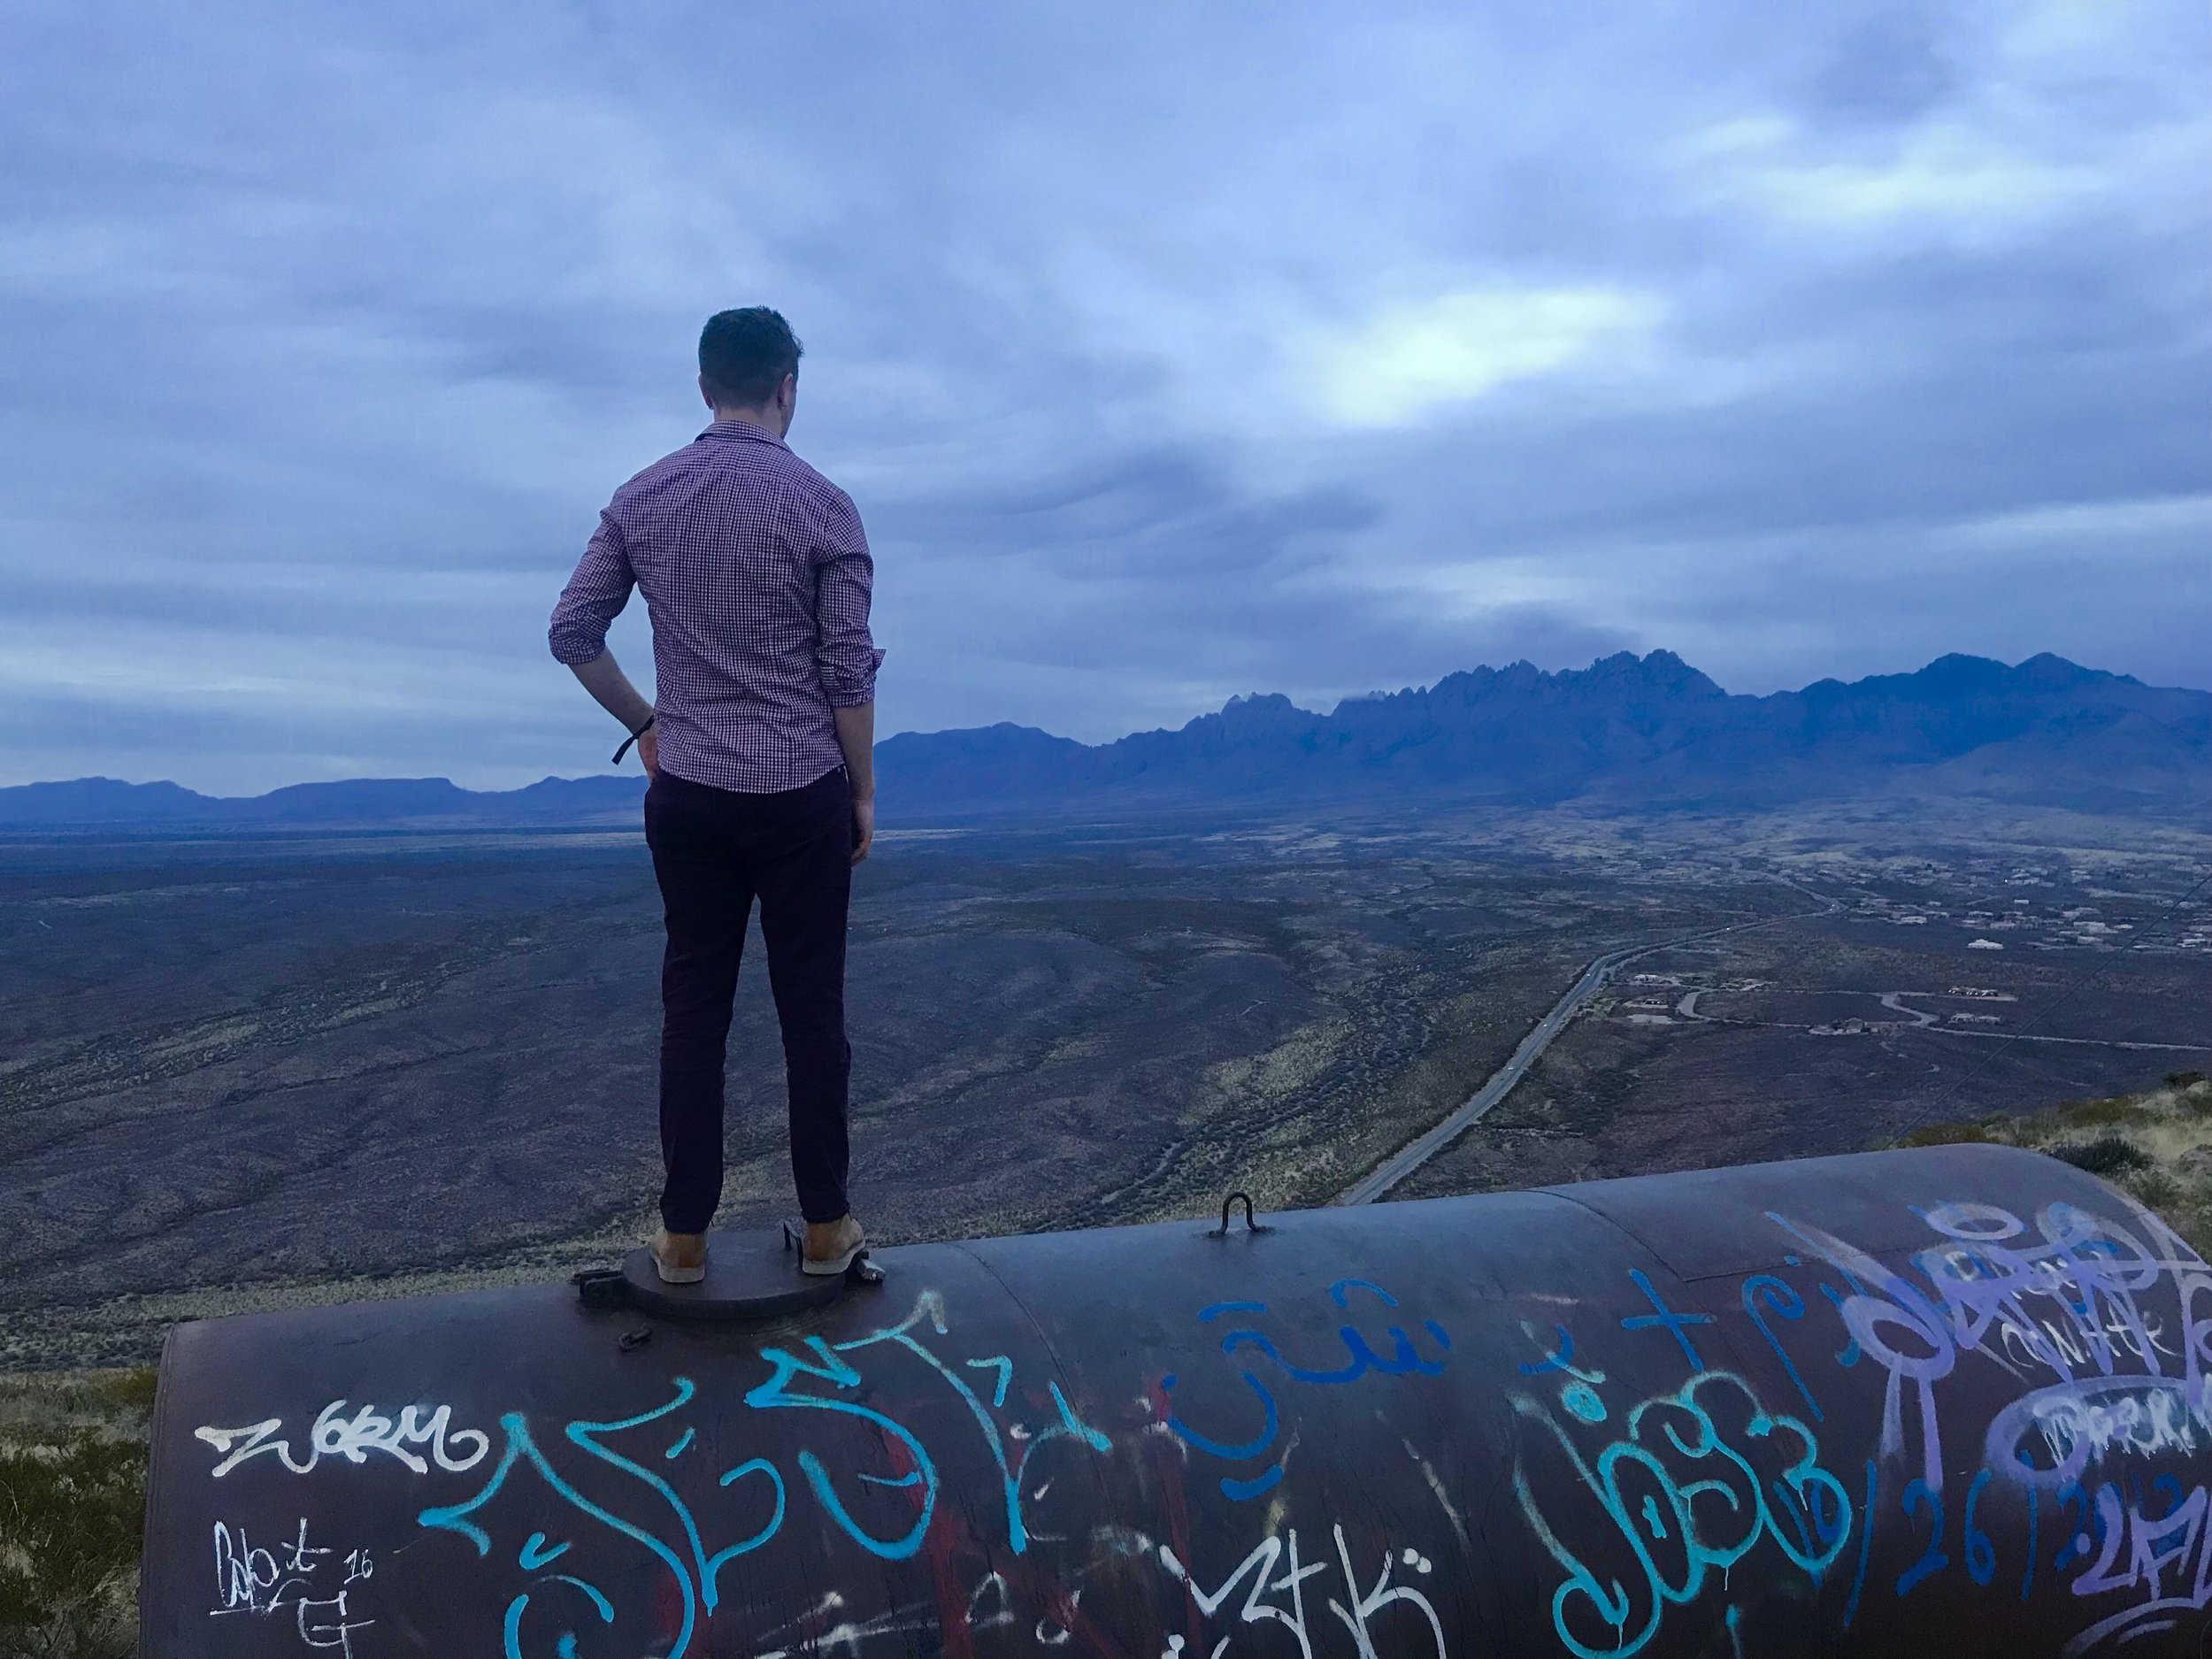 Climbing the Tortugas Mountain in Las Cruces, New Mexico.